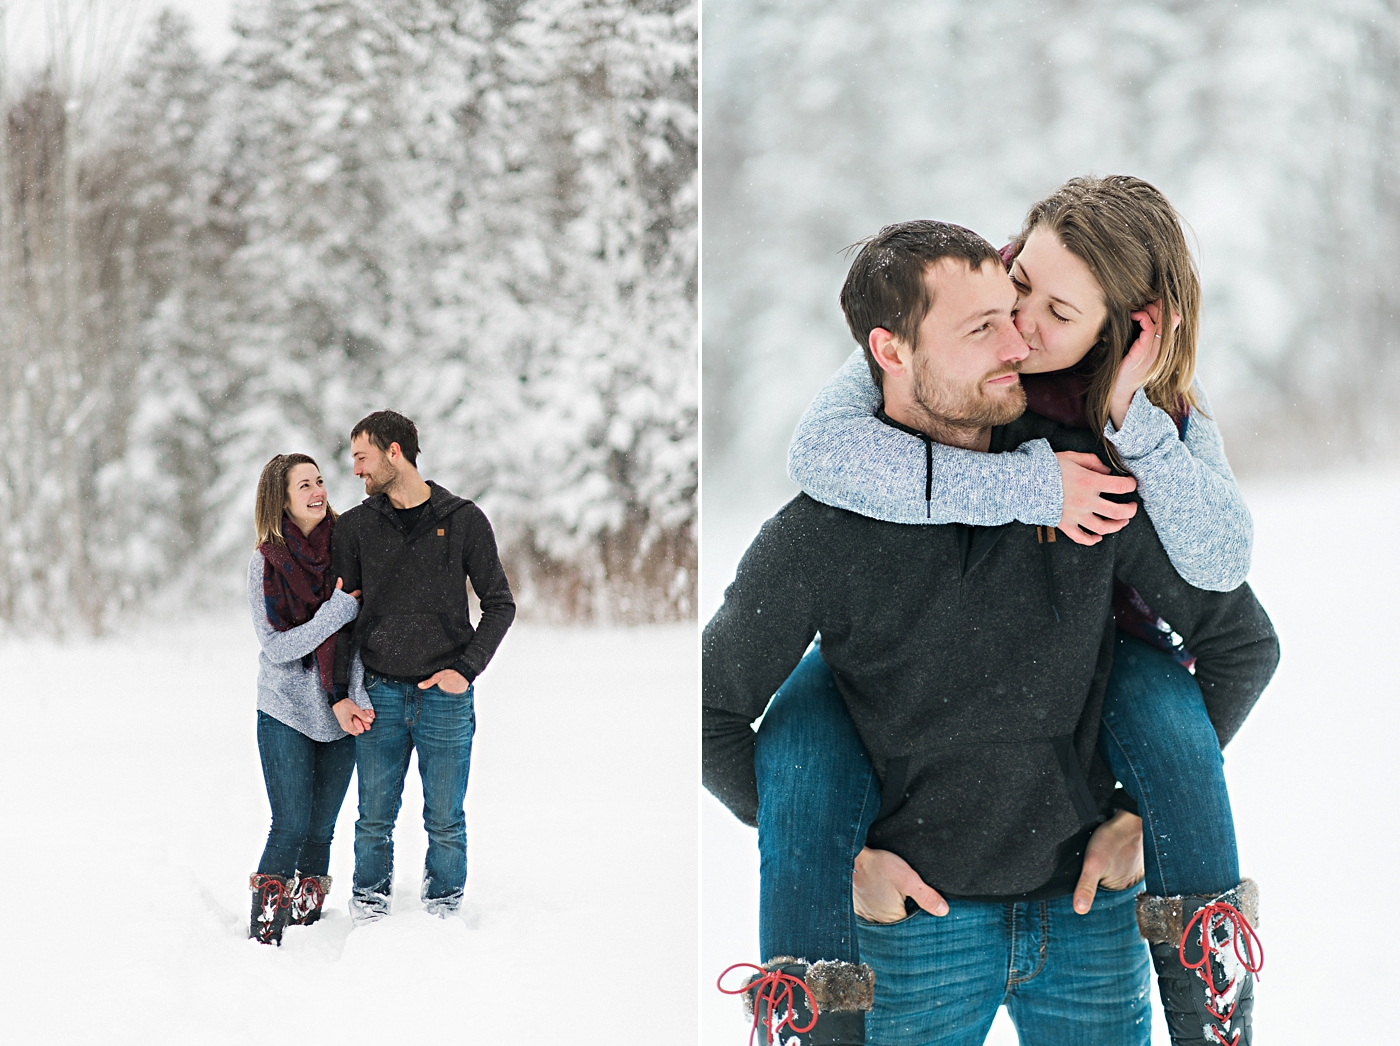 Candace-Berry-Photography-Halifax-Wedding-Photographer-Valley-Engagement_Emily&Macall23.jpeg